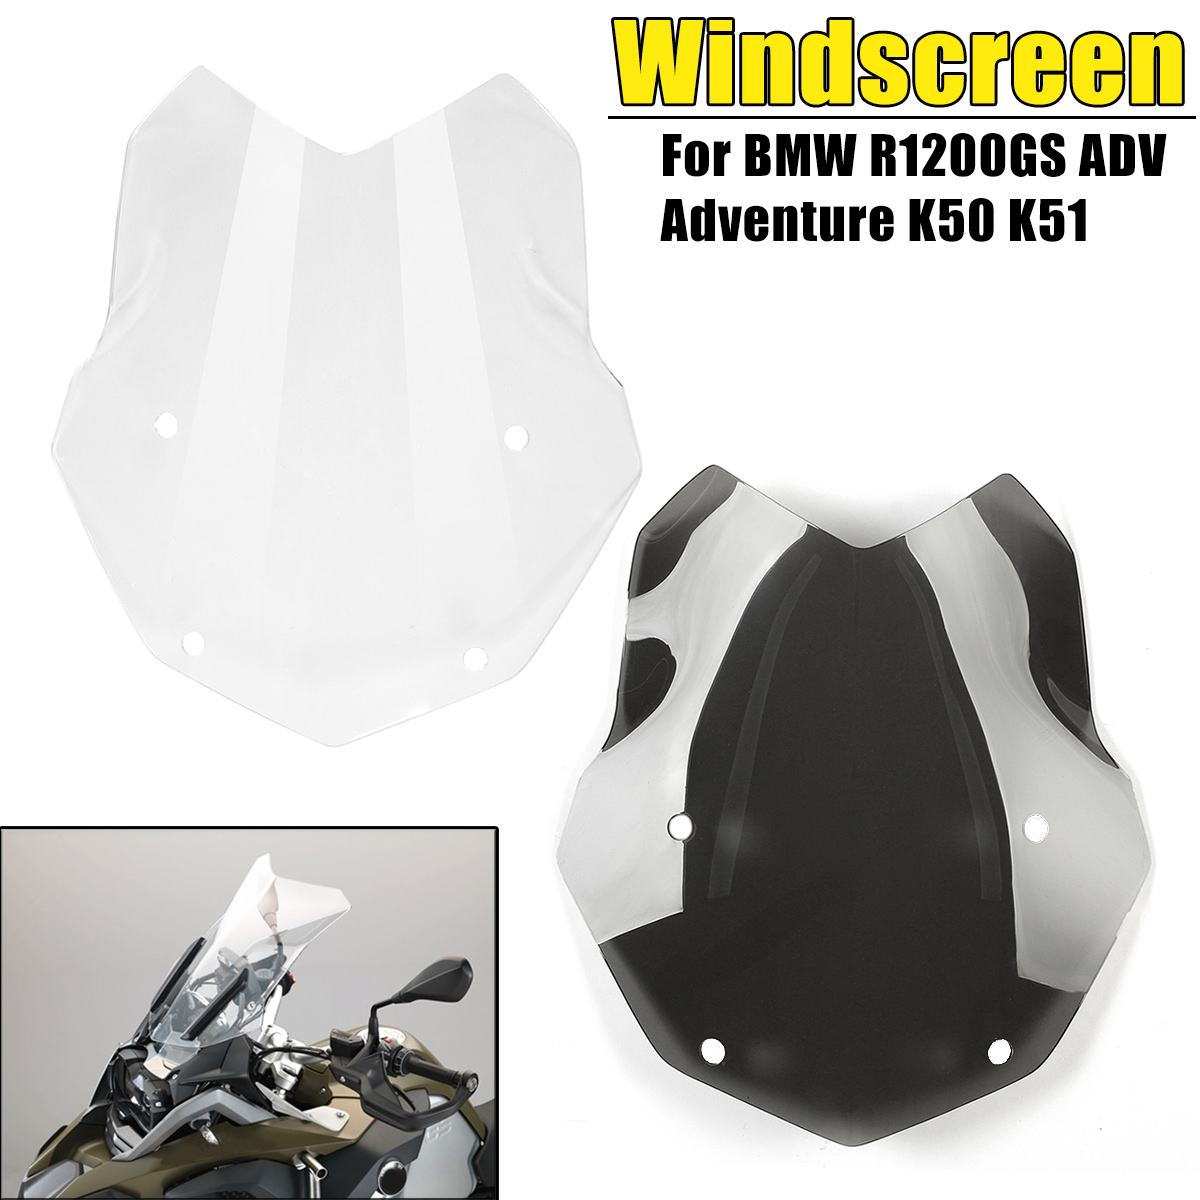 Black Clear PMMA Motorcycle Windshield Windscreen Protector For BMW R1200GS ADV Adventure K50 K51 Motorcycle Parts